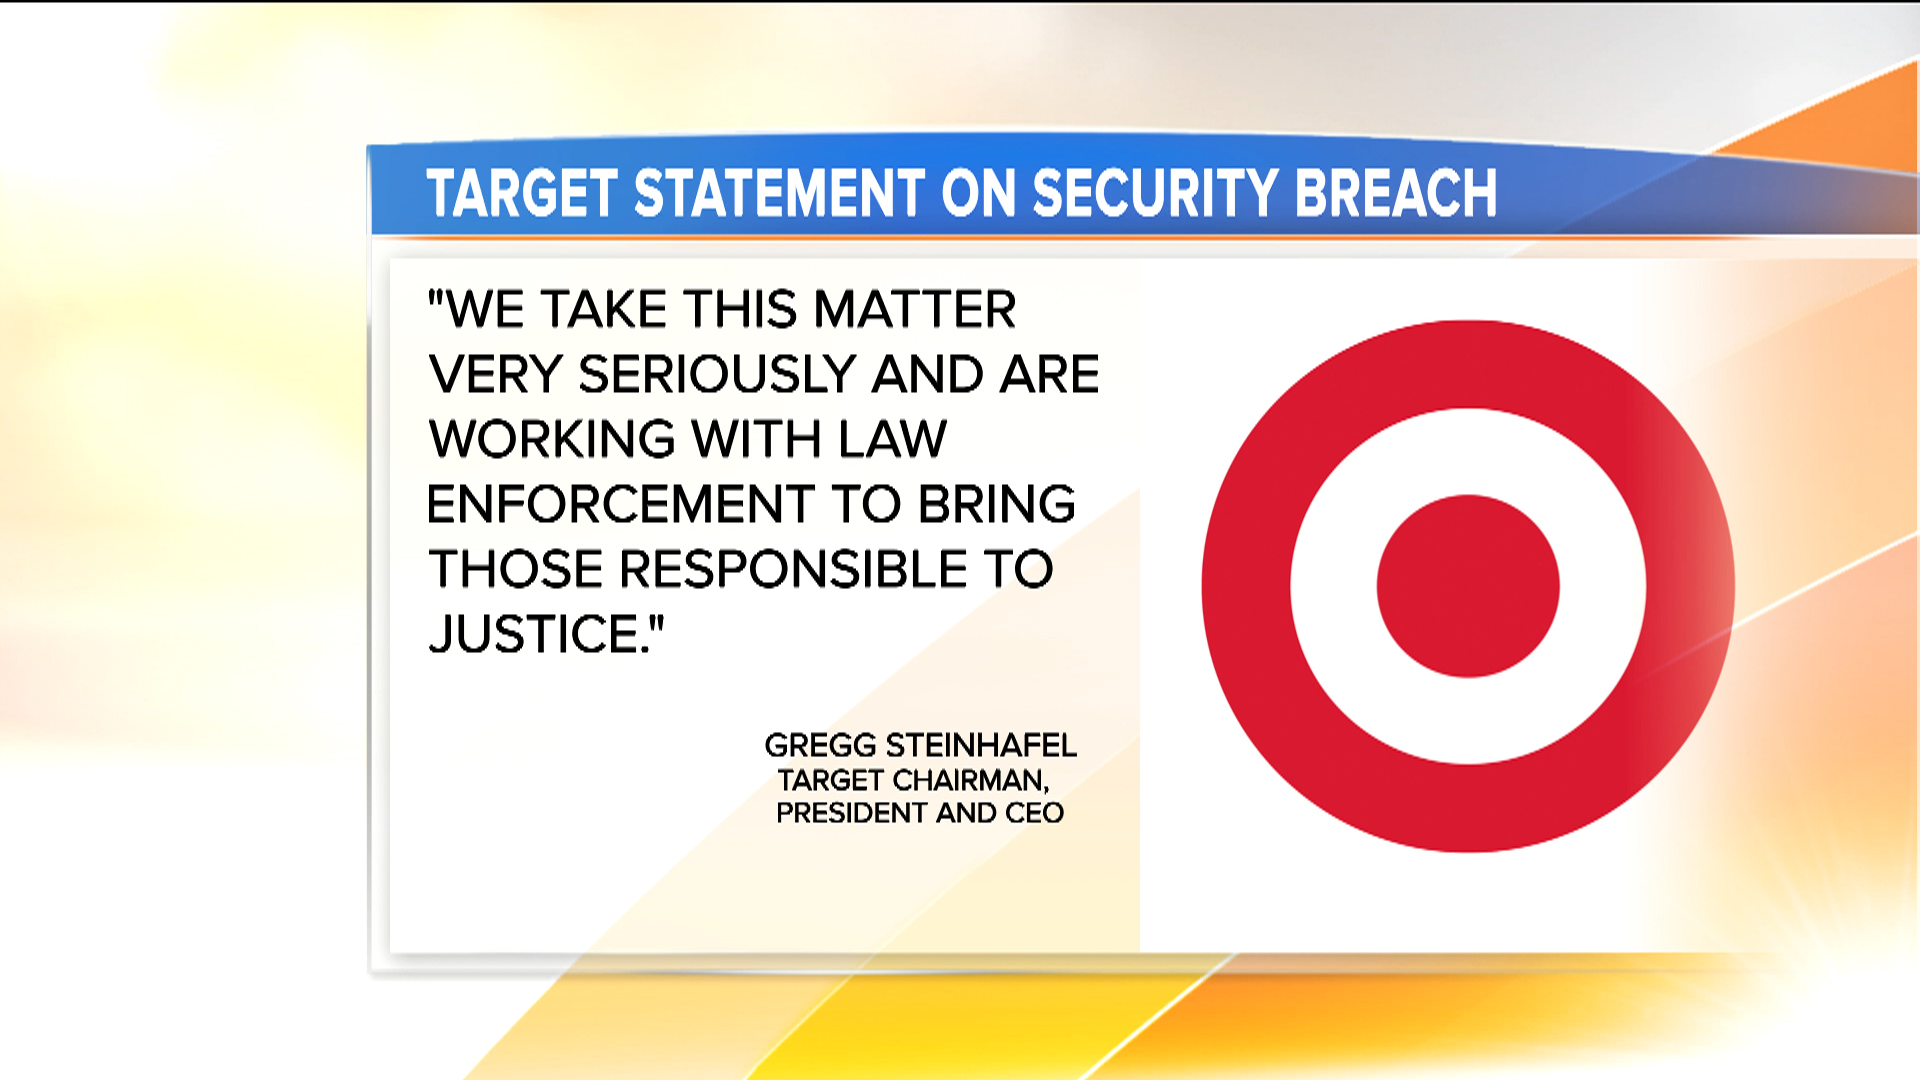 data security breach for target The target breach was just the beginning of a series of massive retail data assaults that would expose critical weaknesses in enterprise data security and payment systems.